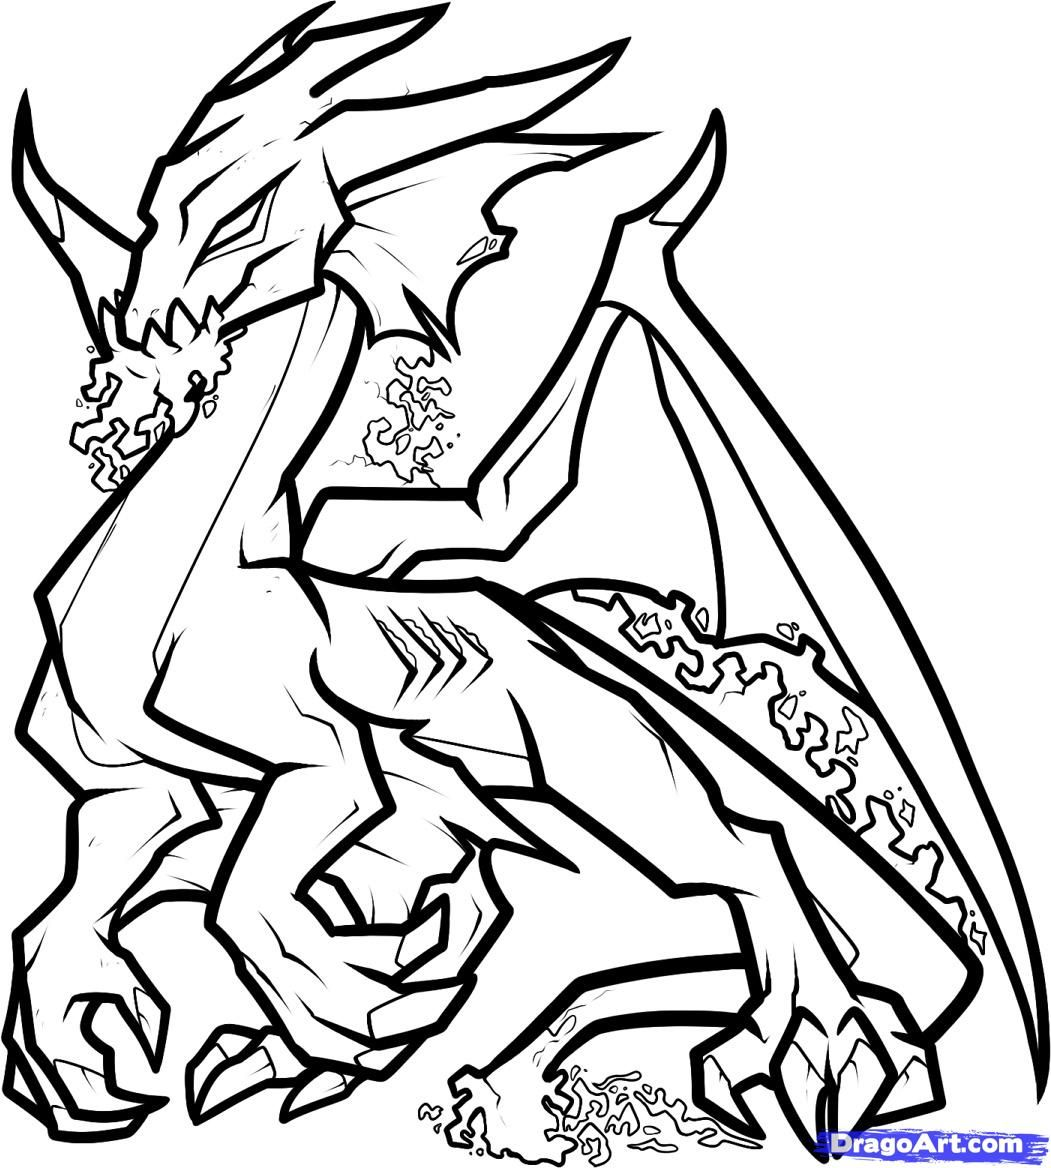 Realistic Dragon Coloring Pages Dragon Coloring Page Dragon Pictures To Color Realistic Dragon